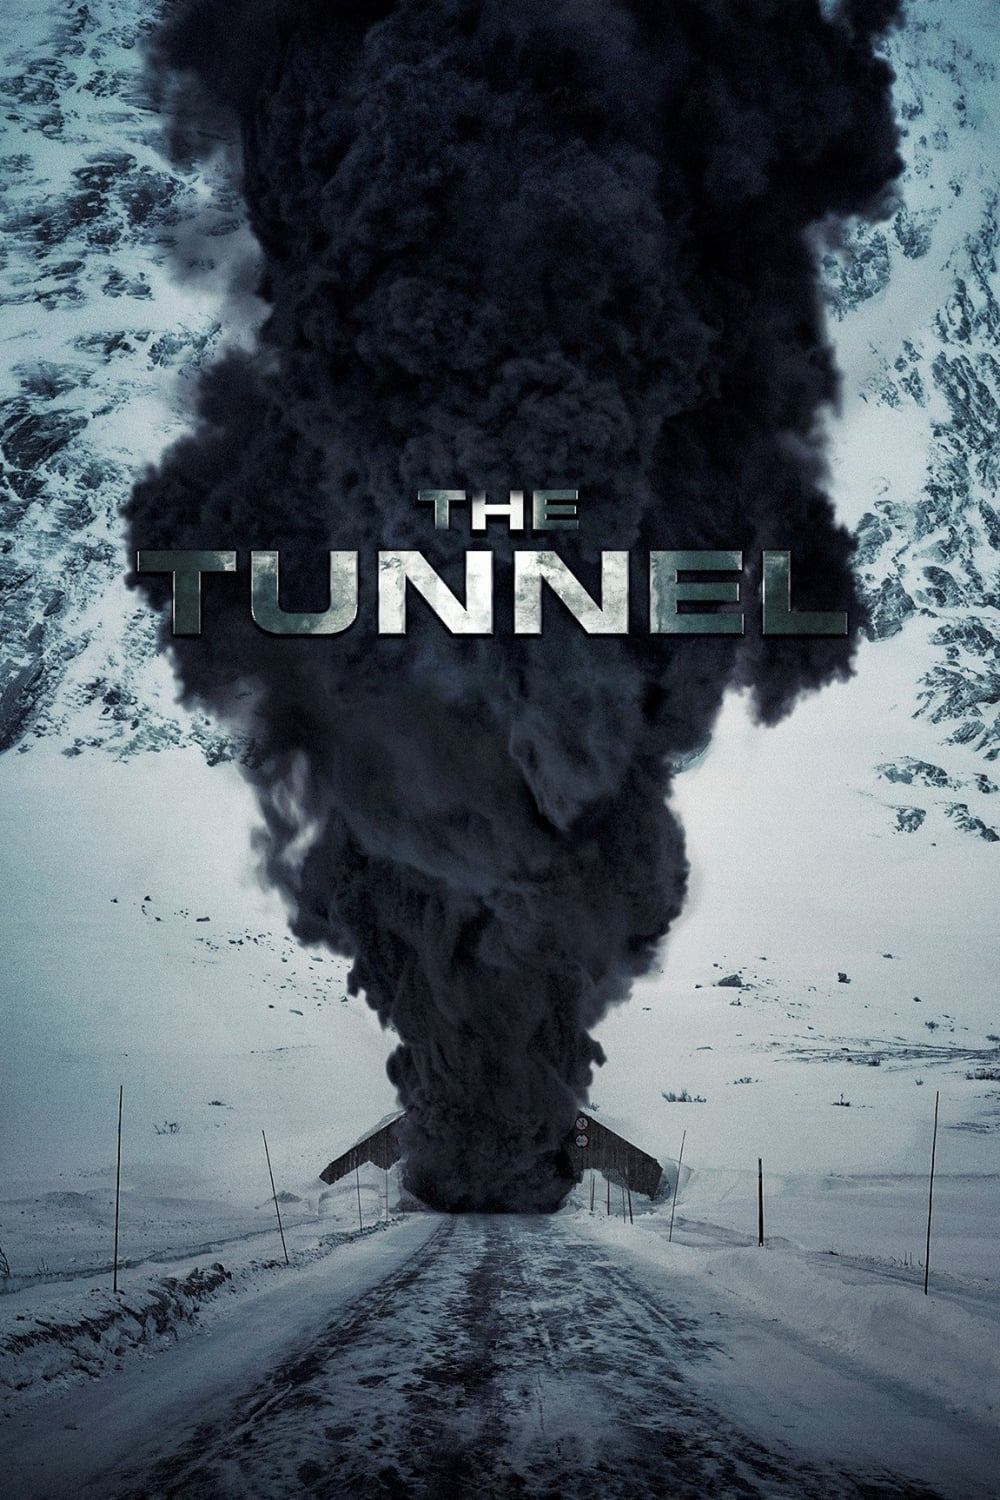 The-Tunnel-Tunnelen-2019-576